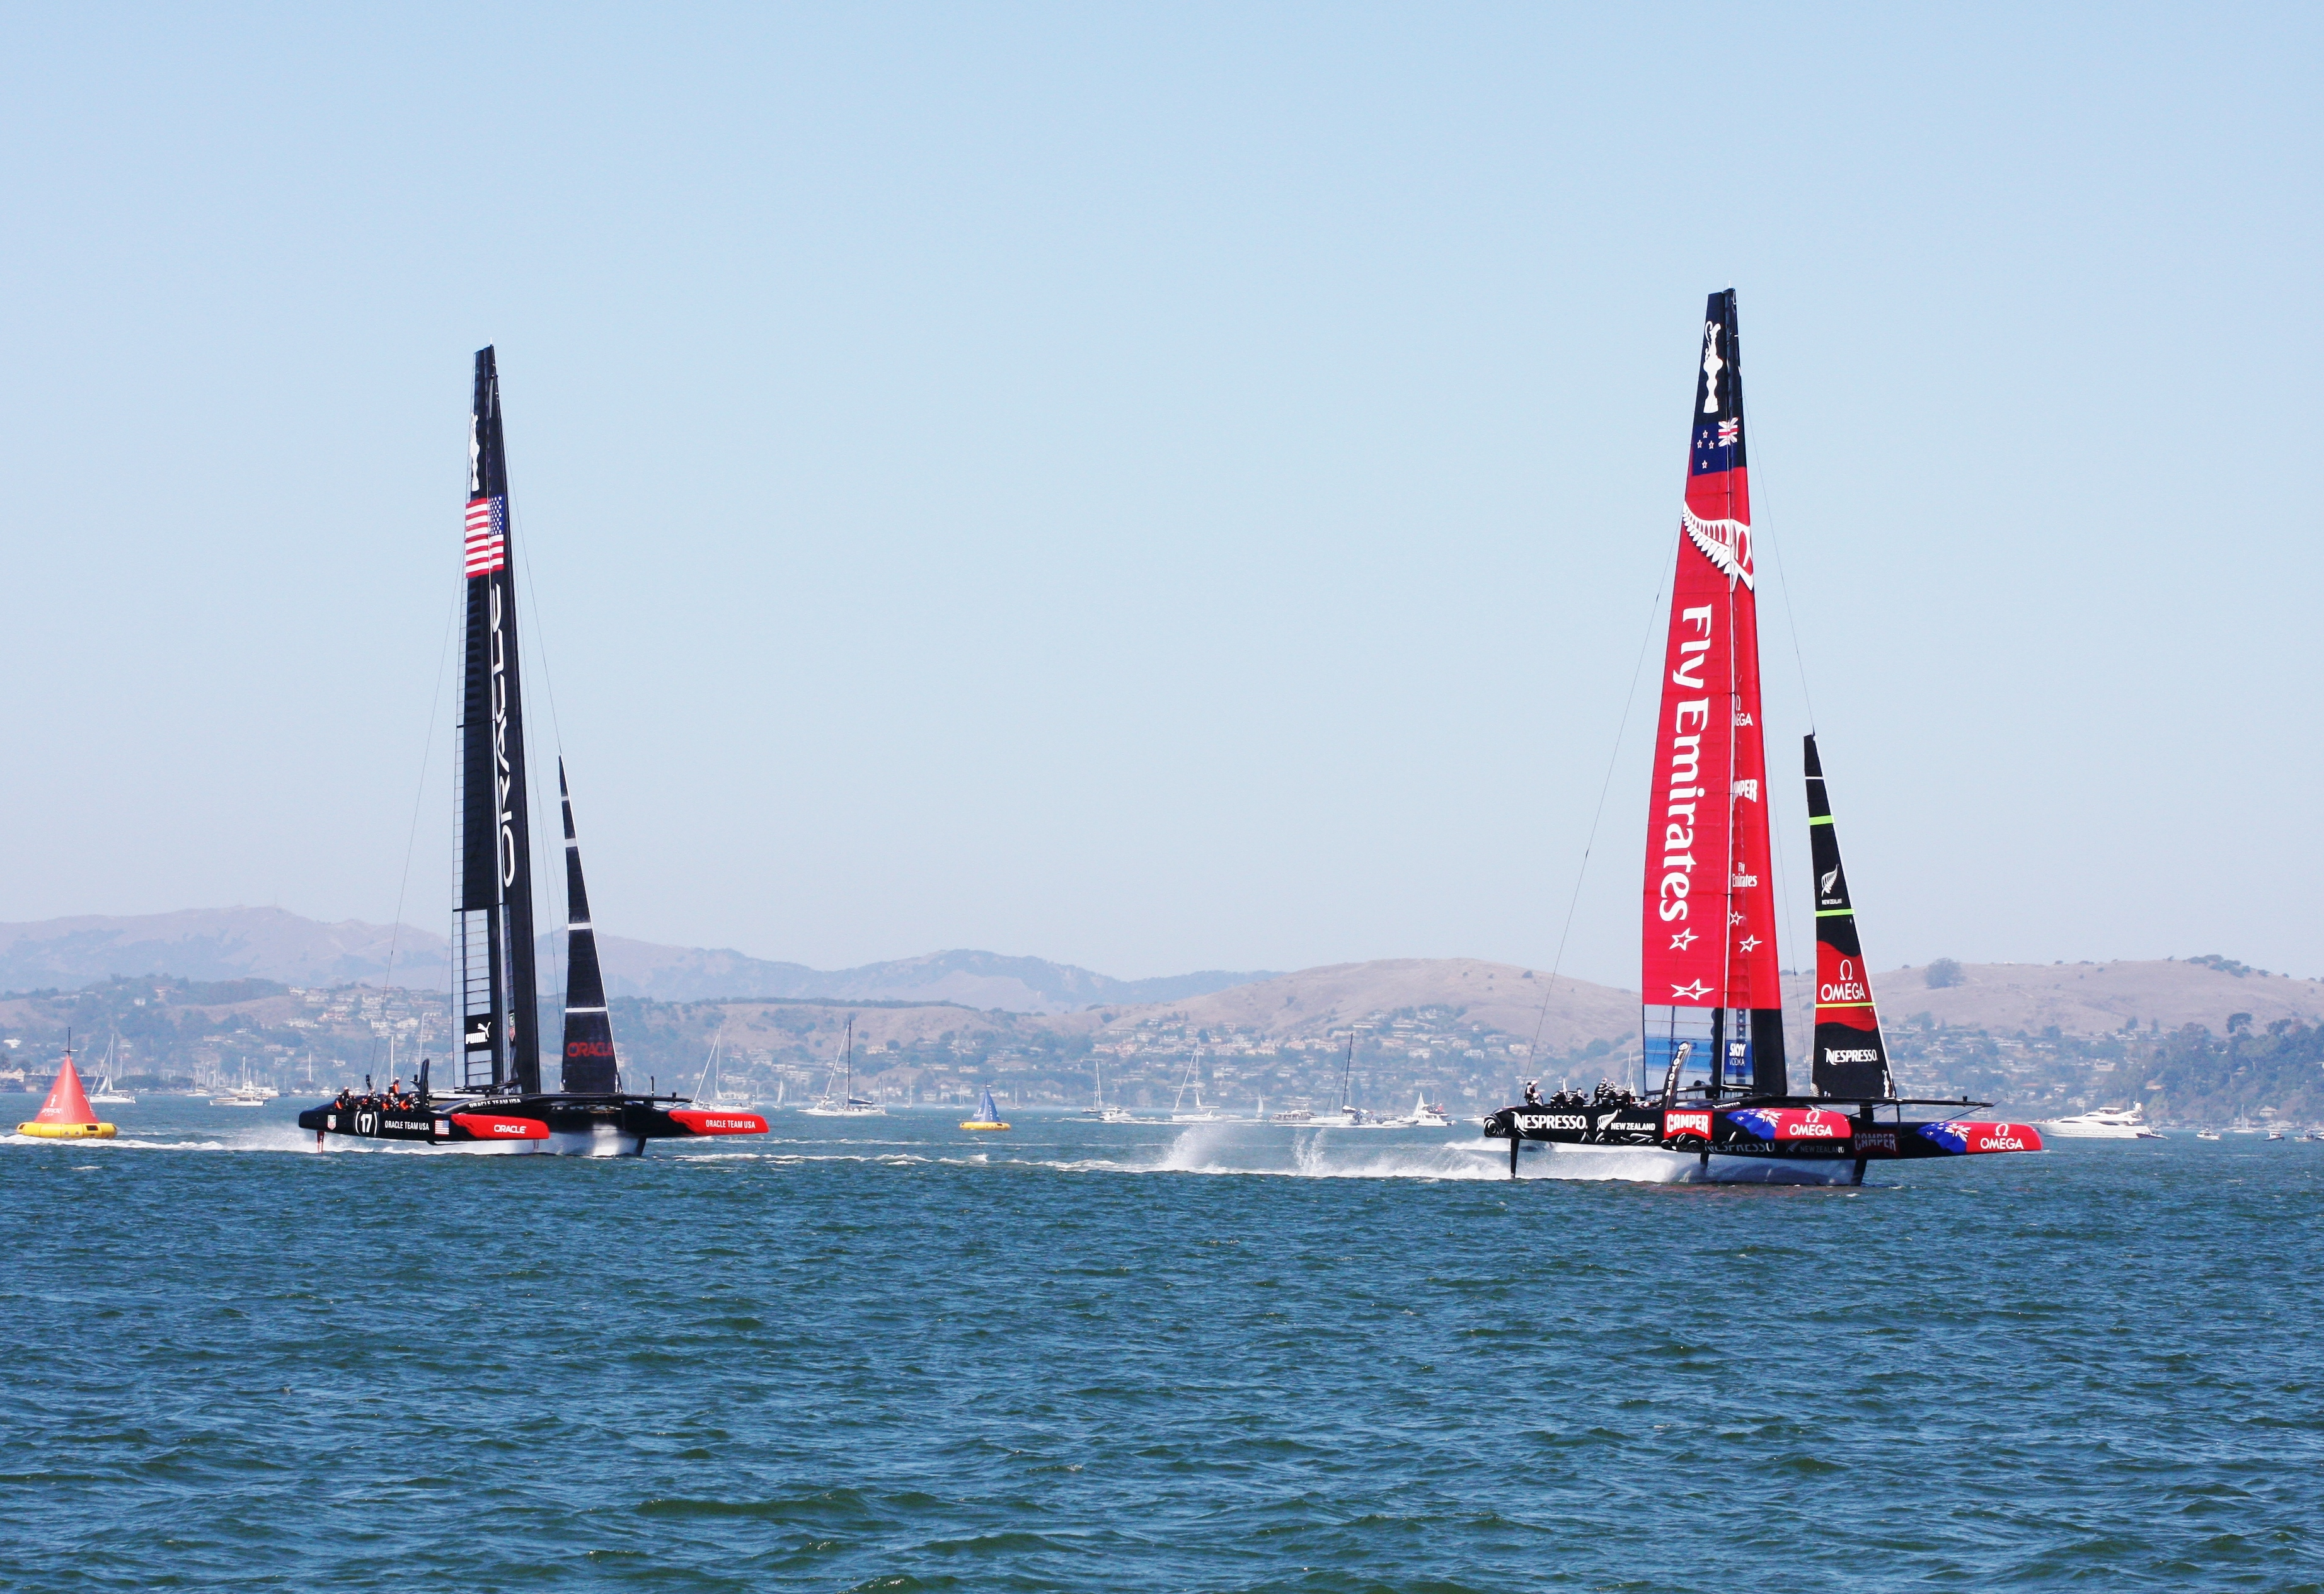 &quout;File:2013 America's Cup, race 1, mark 1.JPG&quout; by Donan.raven is licensed under CC BY-SA 3.0